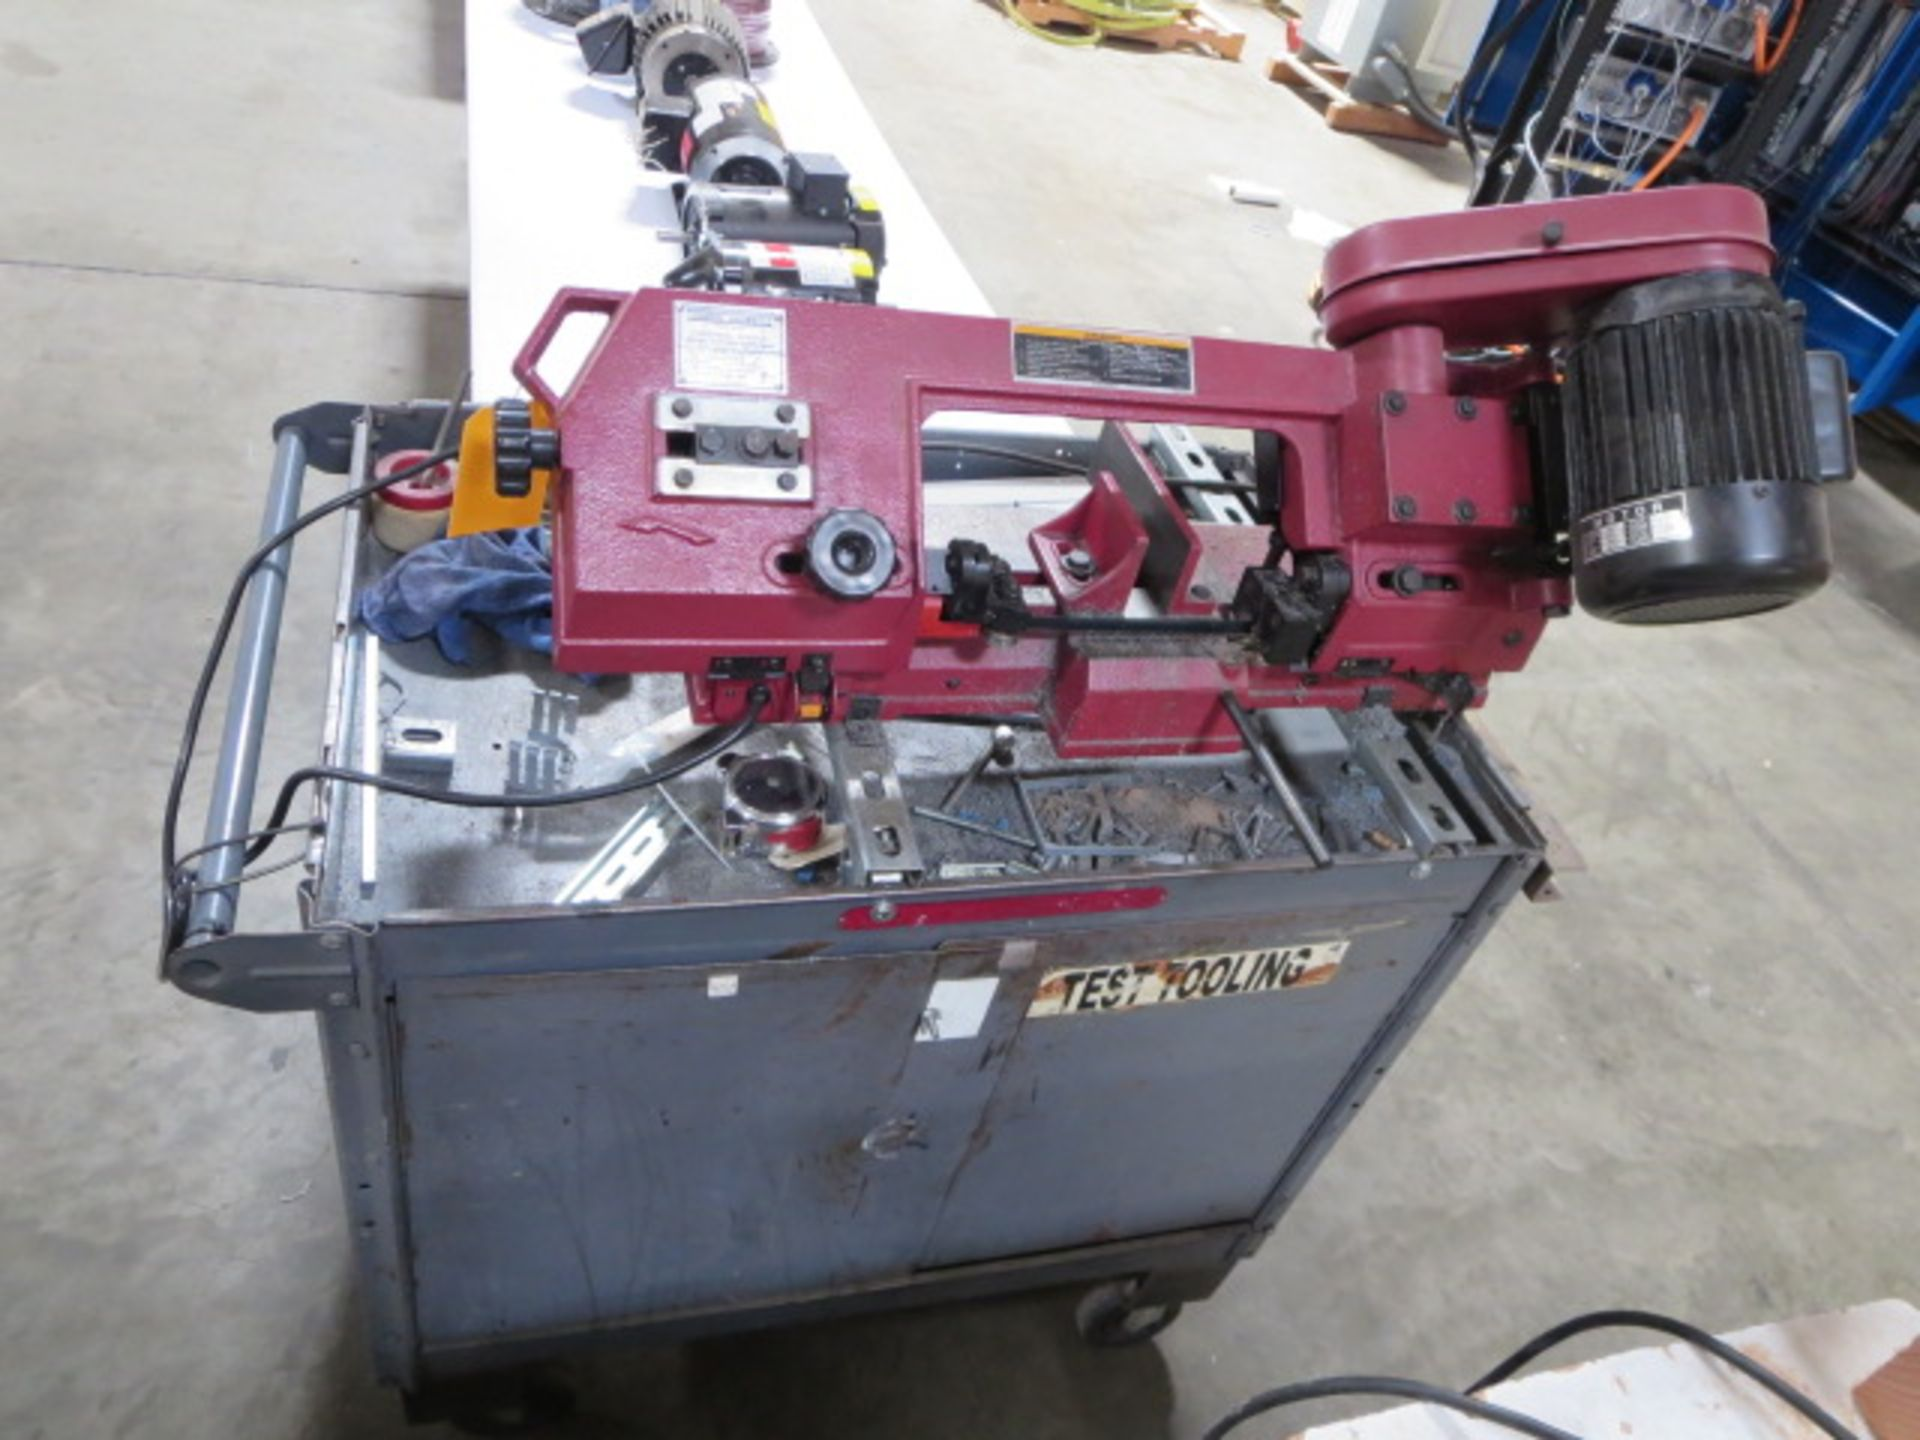 Lot 19 - Central Machinery Horizontal/Vertical Metal Cutting Band Saw, model 93762, Includes Rolling Cart